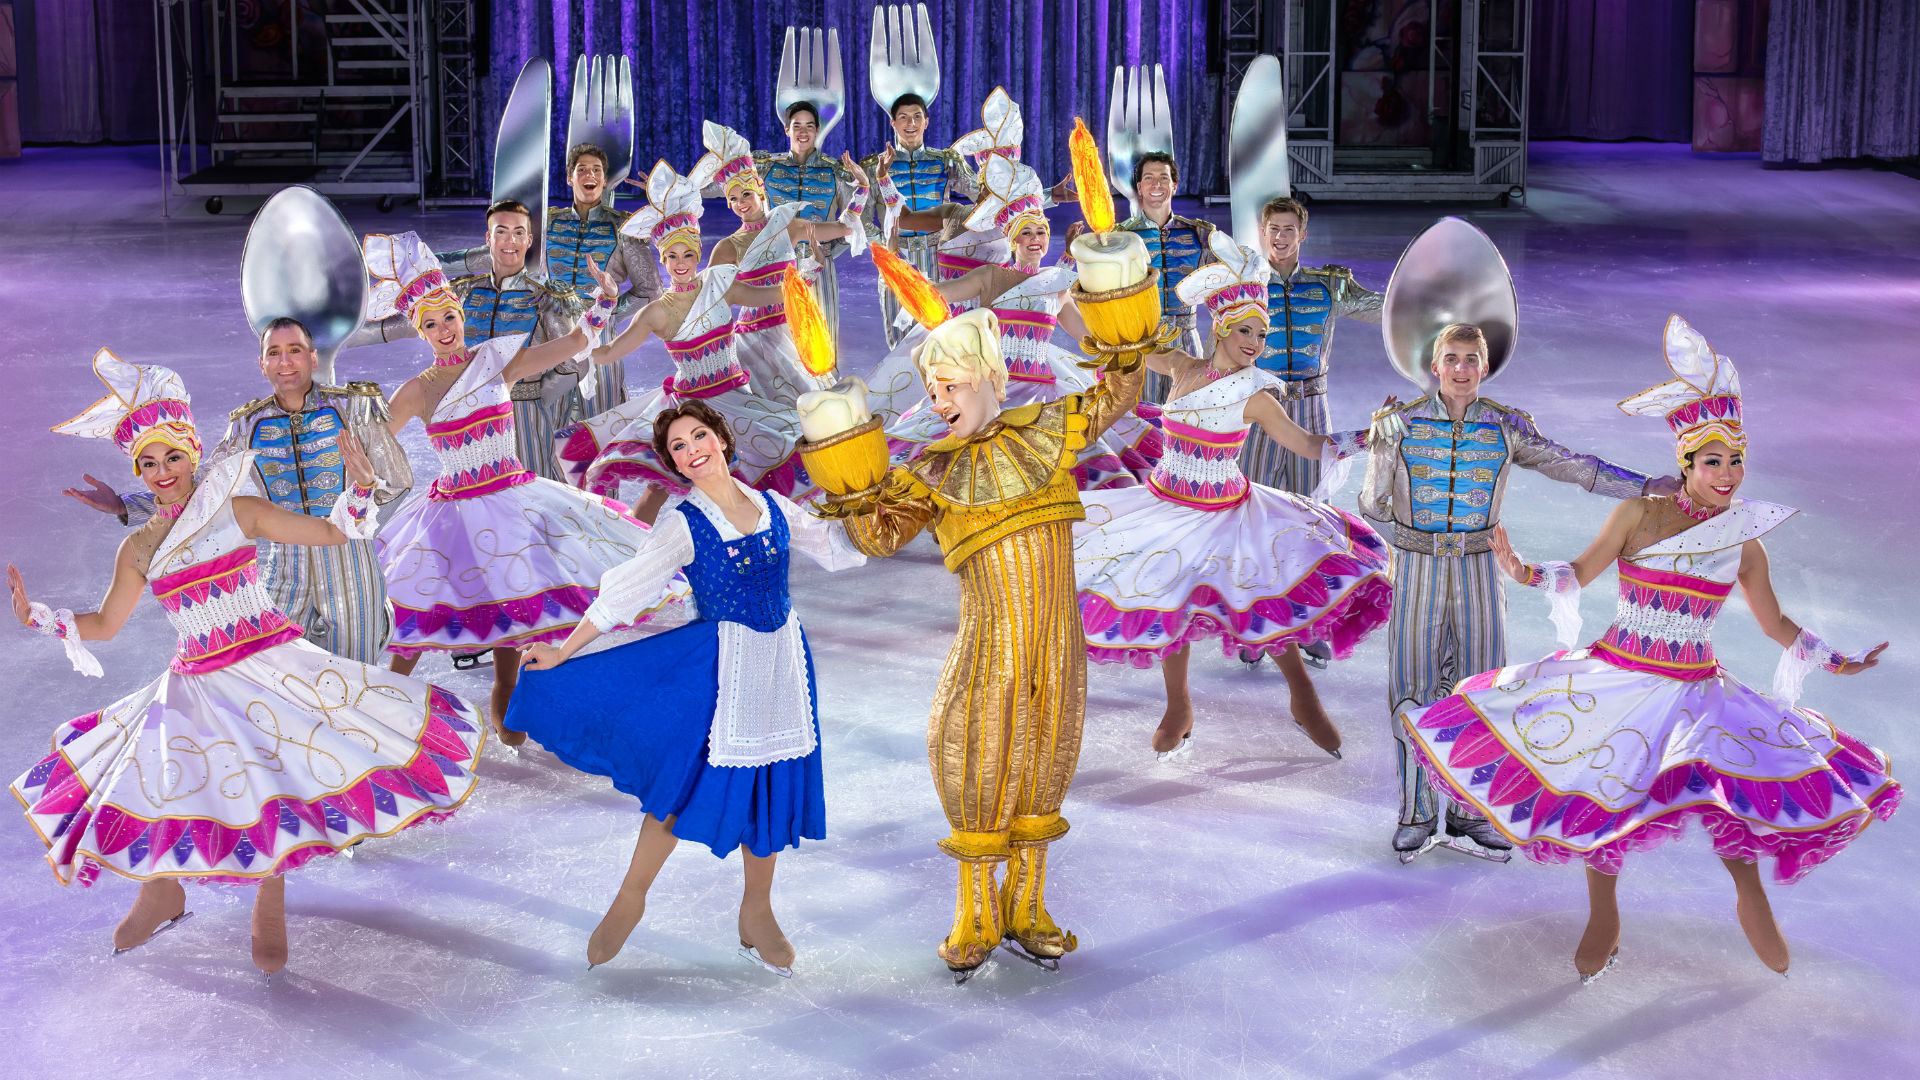 Disney characters on the ice at Disney On Ice presents Dream Big at the O2 Arena